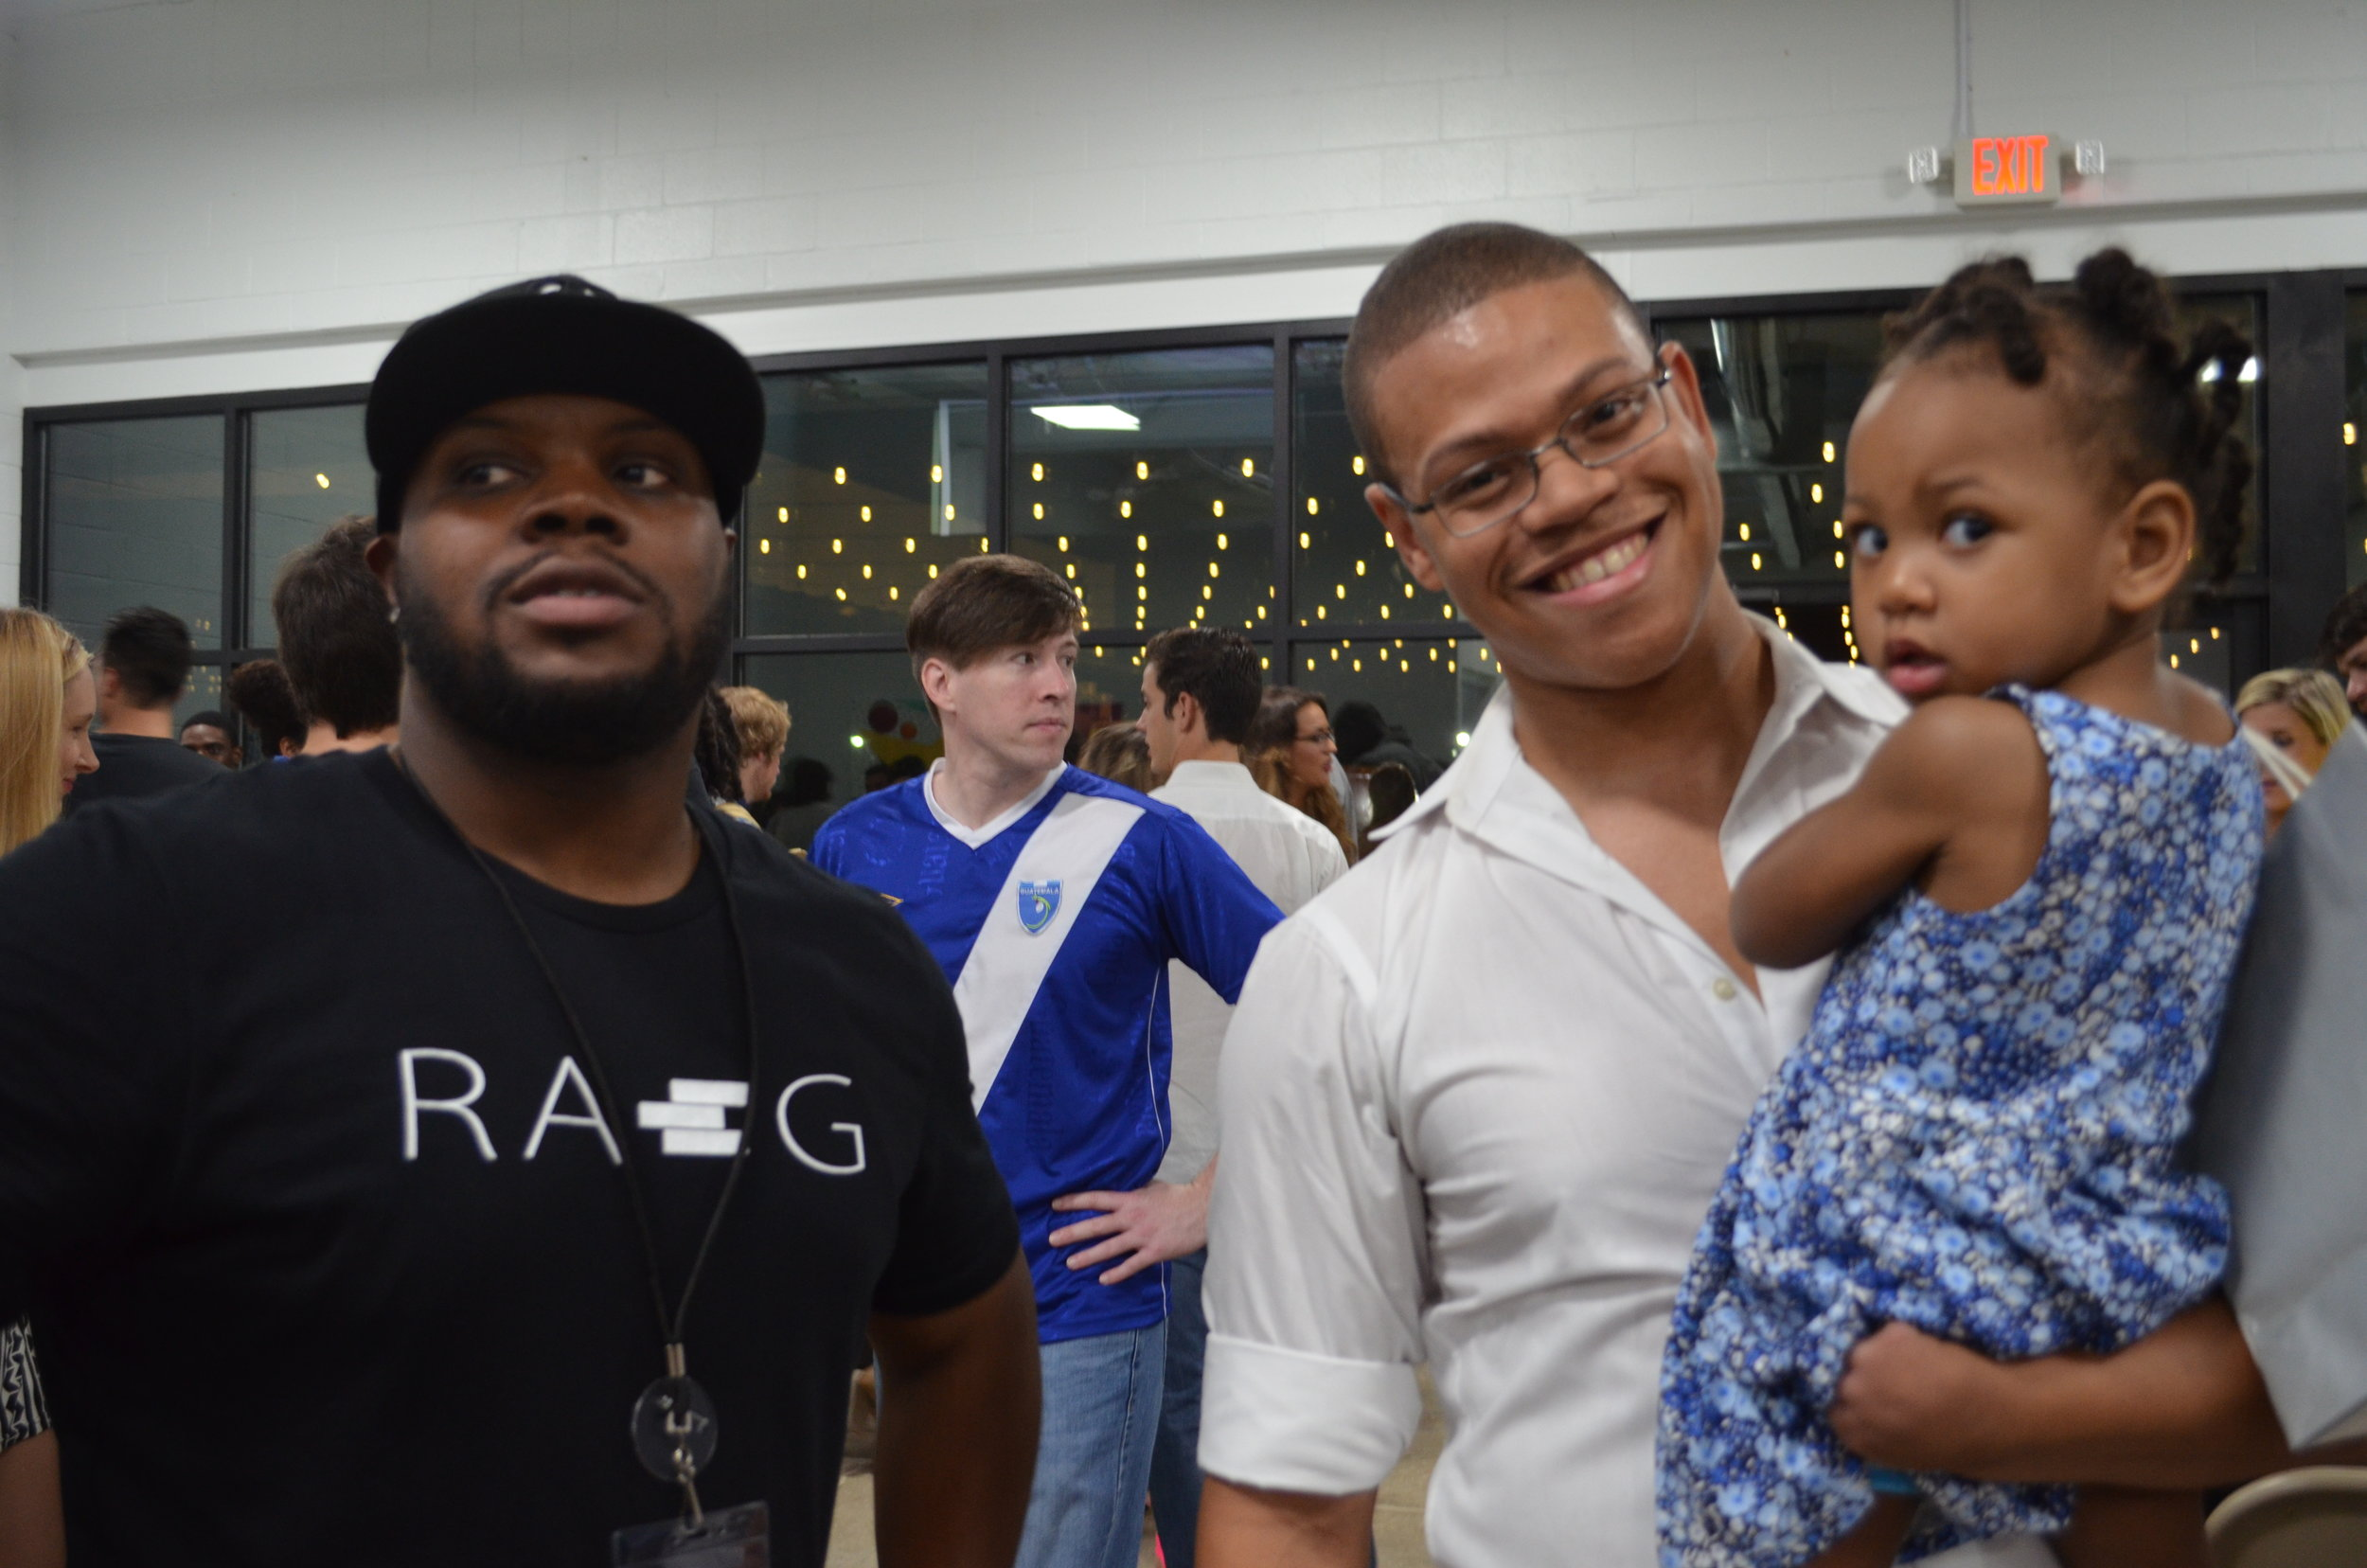 Jason, partner in the RA+G Gallery with Desmond Blair and Desmond's daughter.